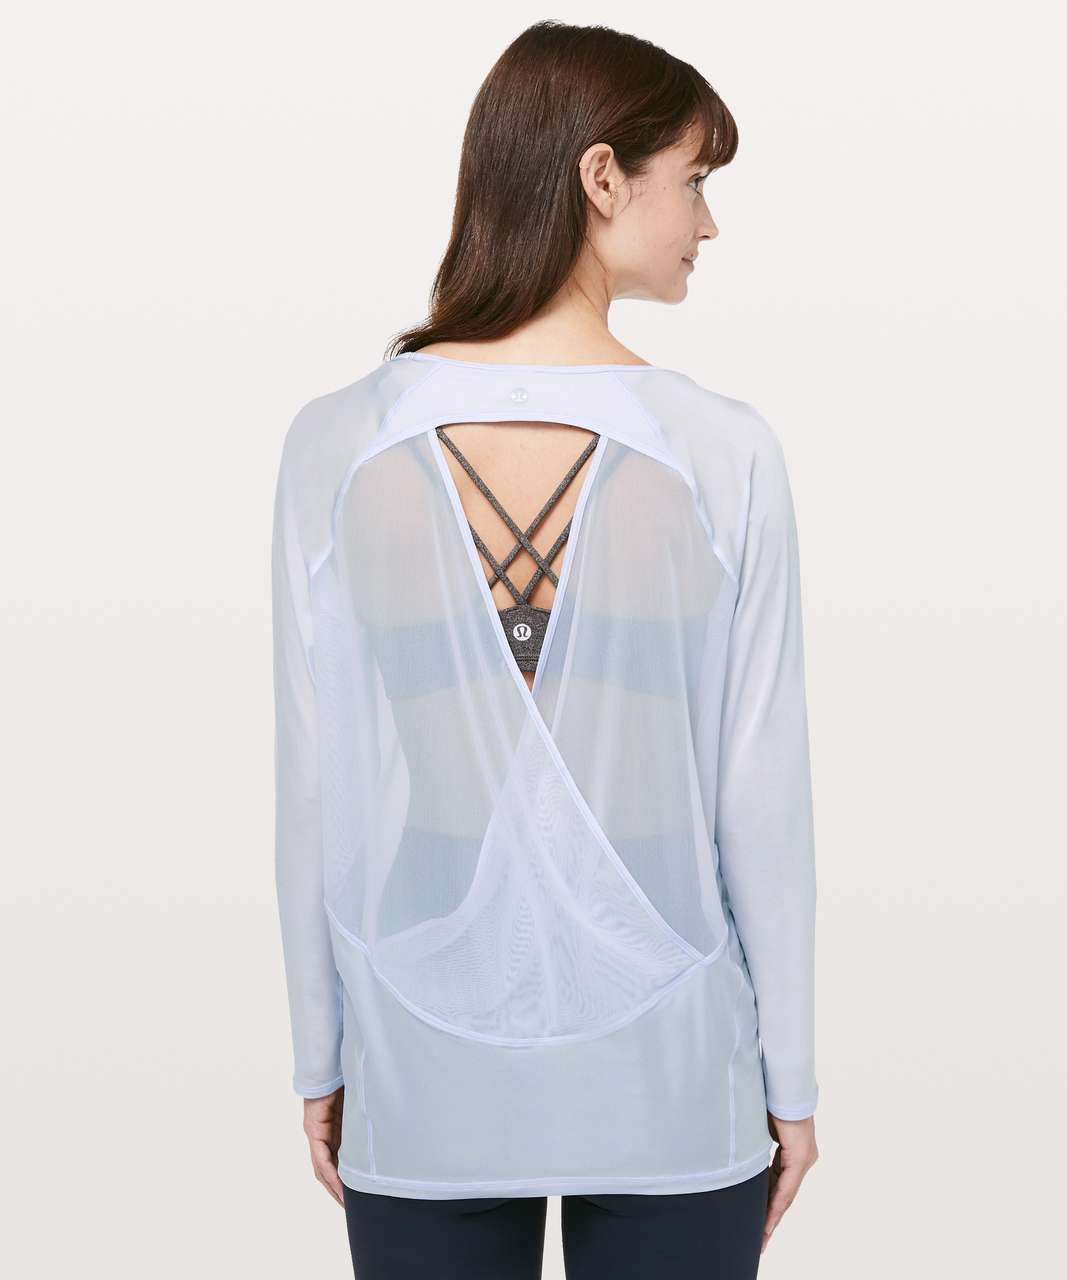 Lululemon If Youre Lucky Long Sleeve Tee - Serene Blue